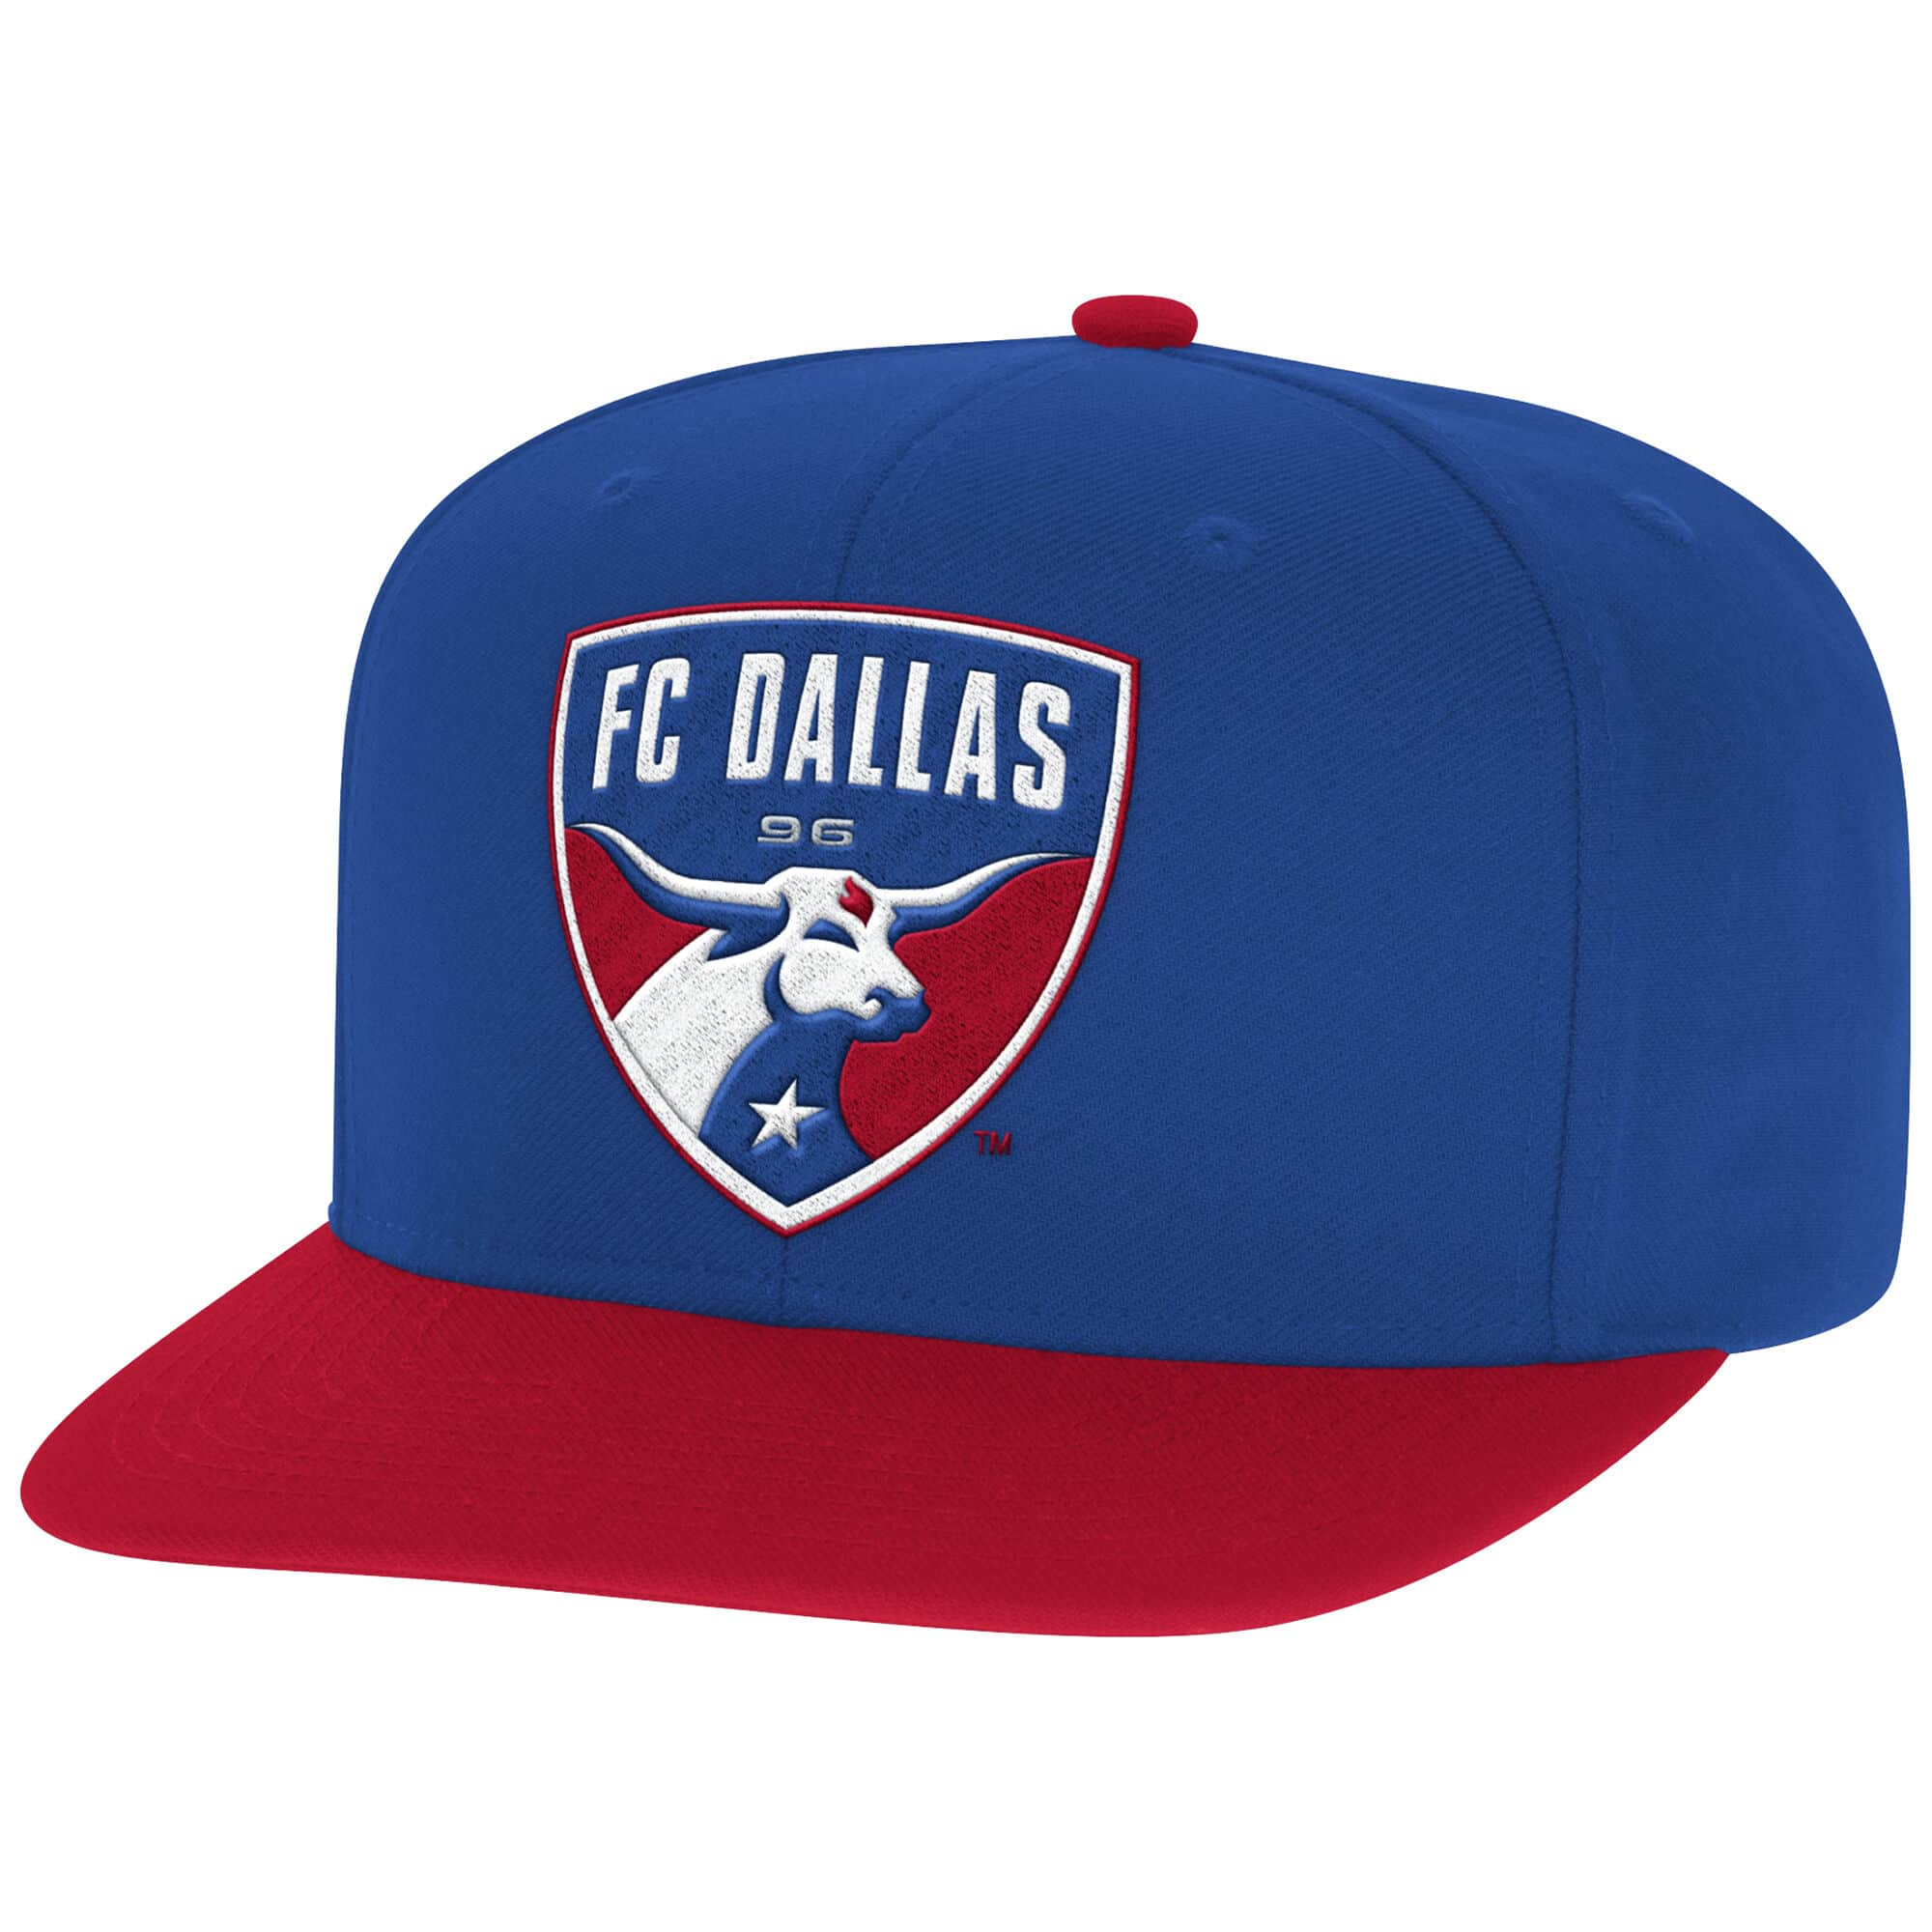 XL Logo Snapback FC Dallas, large